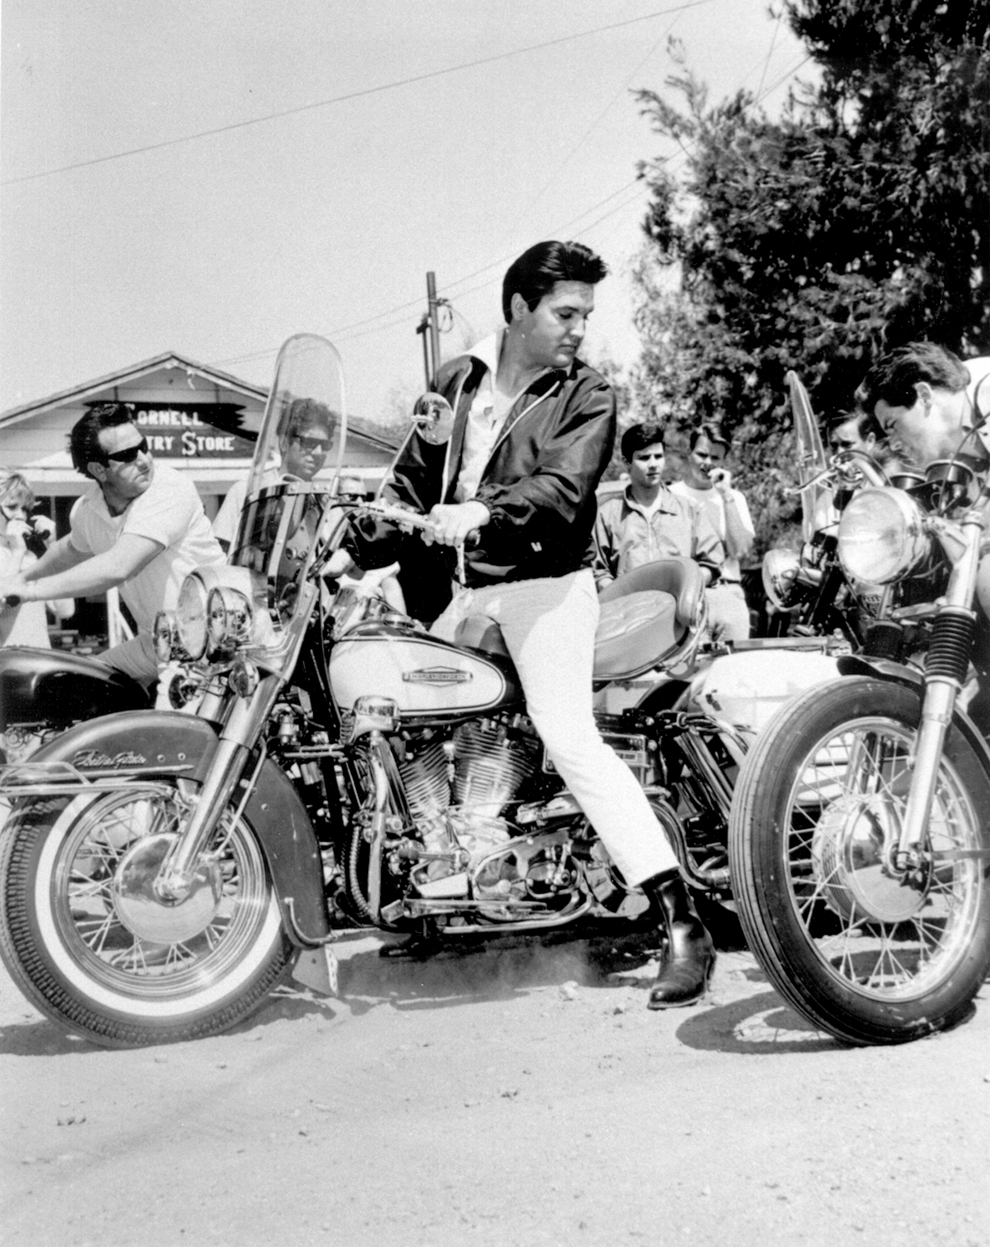 Elvis Presley On Motorcycle